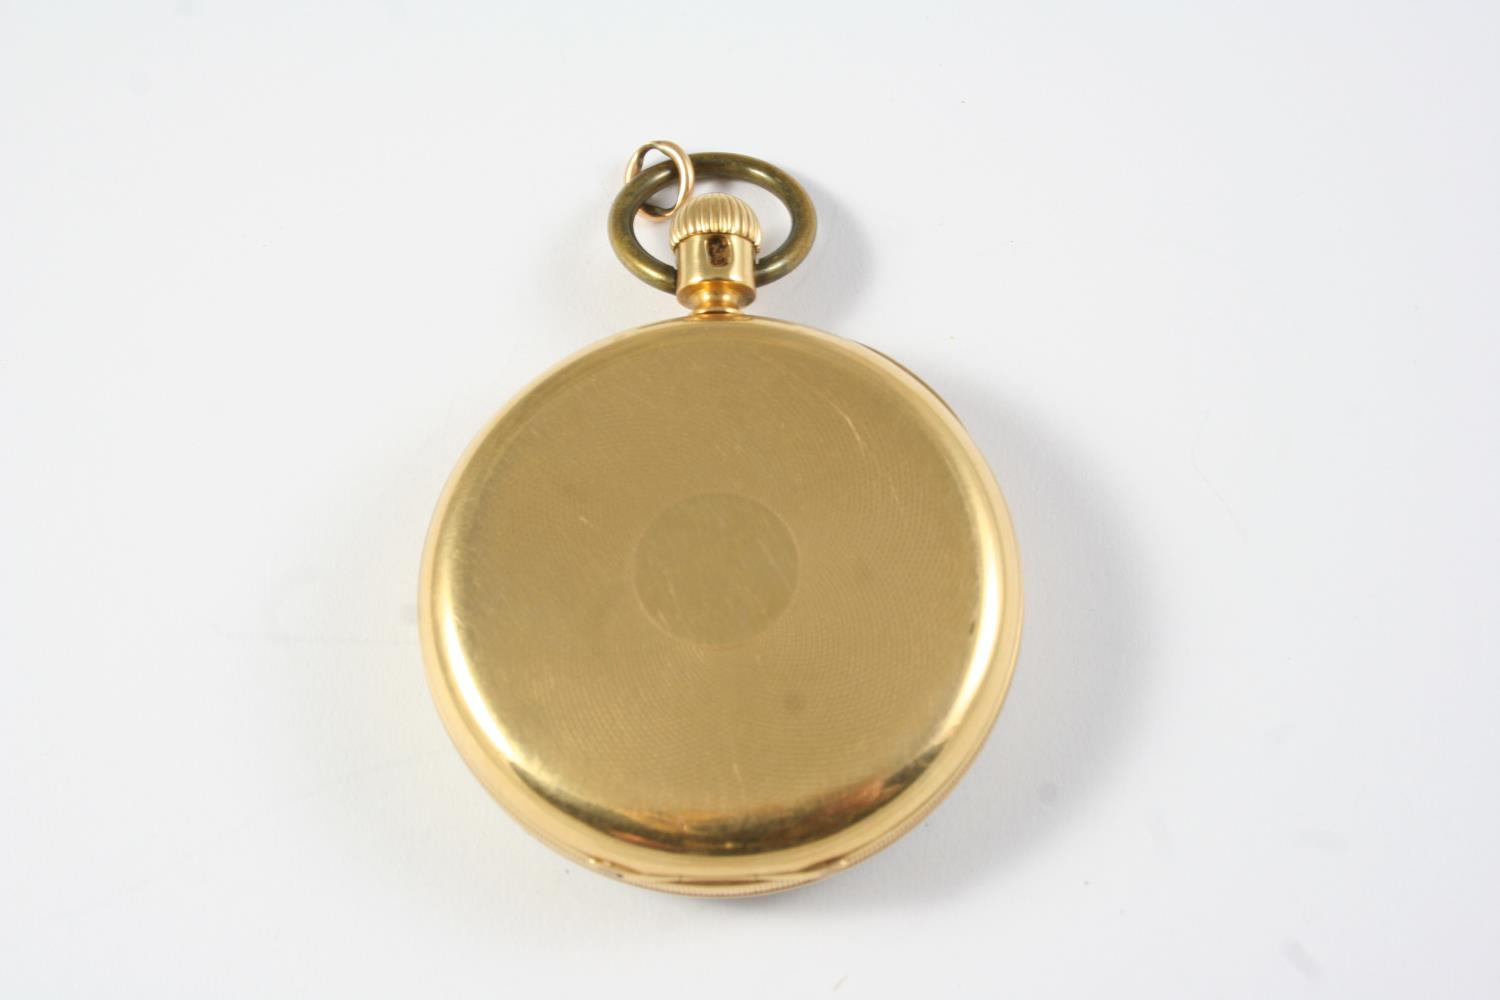 AN EARLY KEYLESS 18CT GOLD OPEN FACED POCKET WATCH BY NICOLE & CAPT, 14 SOHO SQ., LONDON the - Image 5 of 6